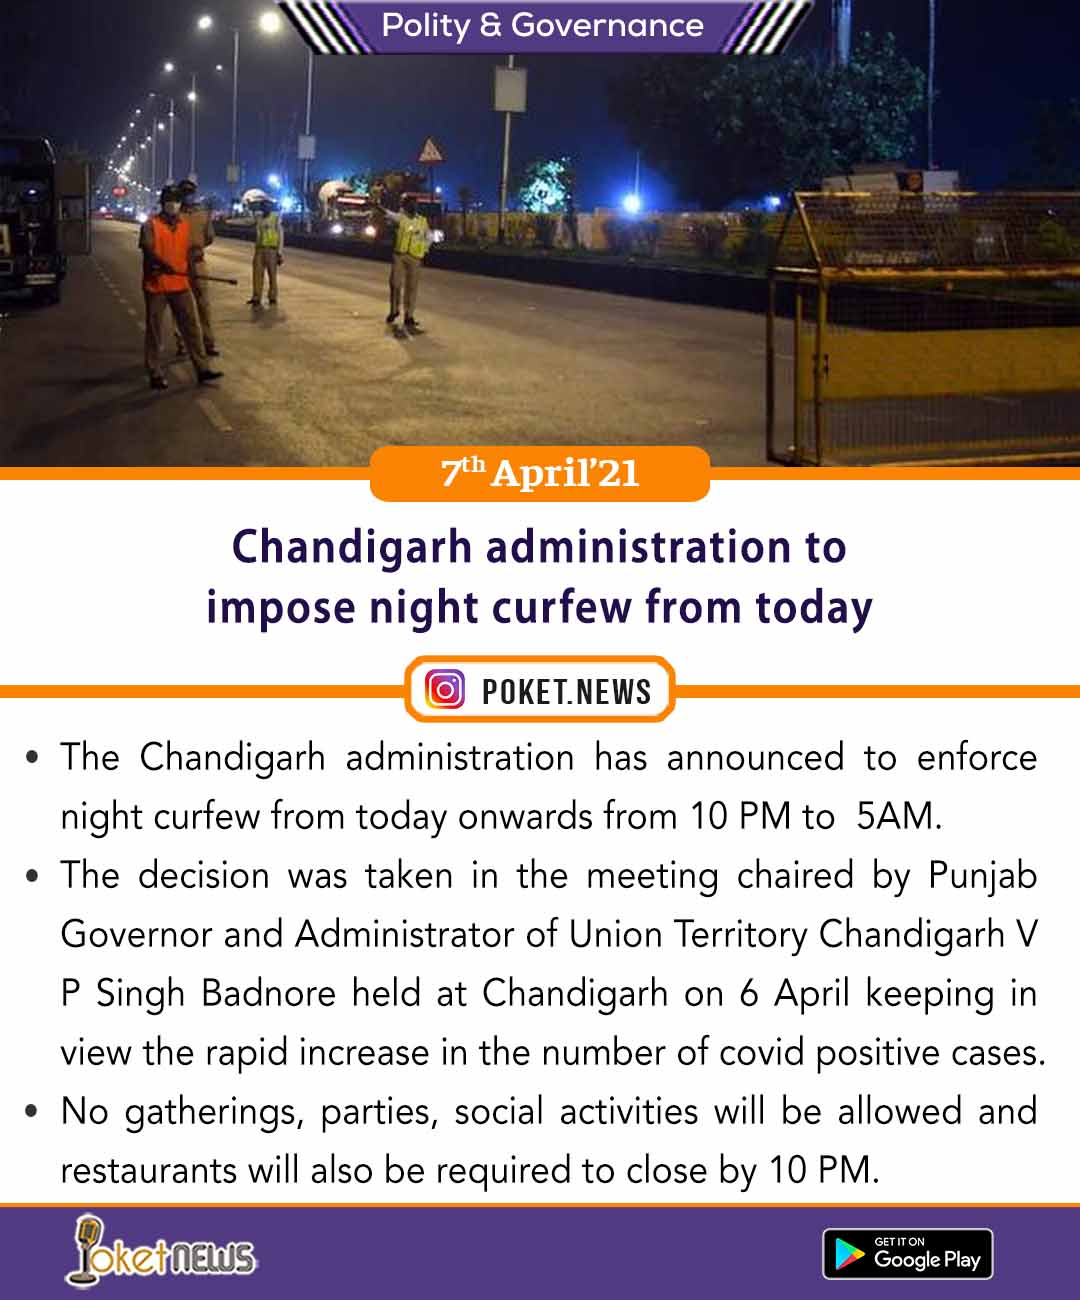 Chandigarh administration to impose night curfew from today